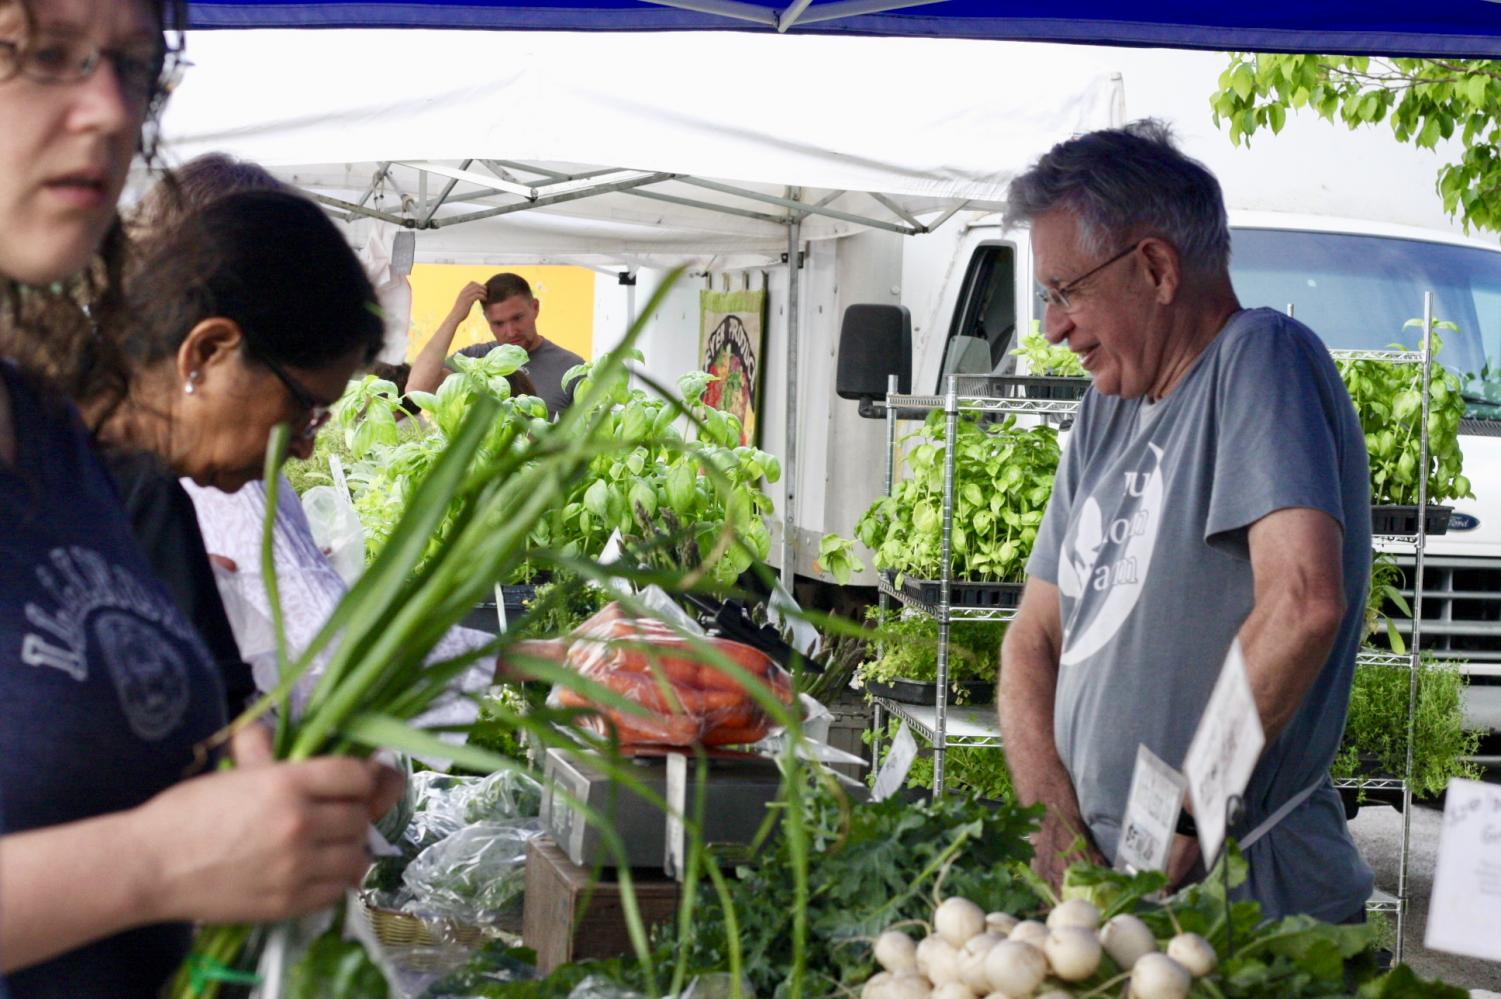 Customers browse for produce at the Blue Moon Farms stand on Saturday, May 19. John Dunkleberger has been with Urbana's Blue Moon Farms since their inception. The Market at the Square offers a variety of locally-grown produce, handcrafted products and fresh-baked breads every Saturday from May through October.